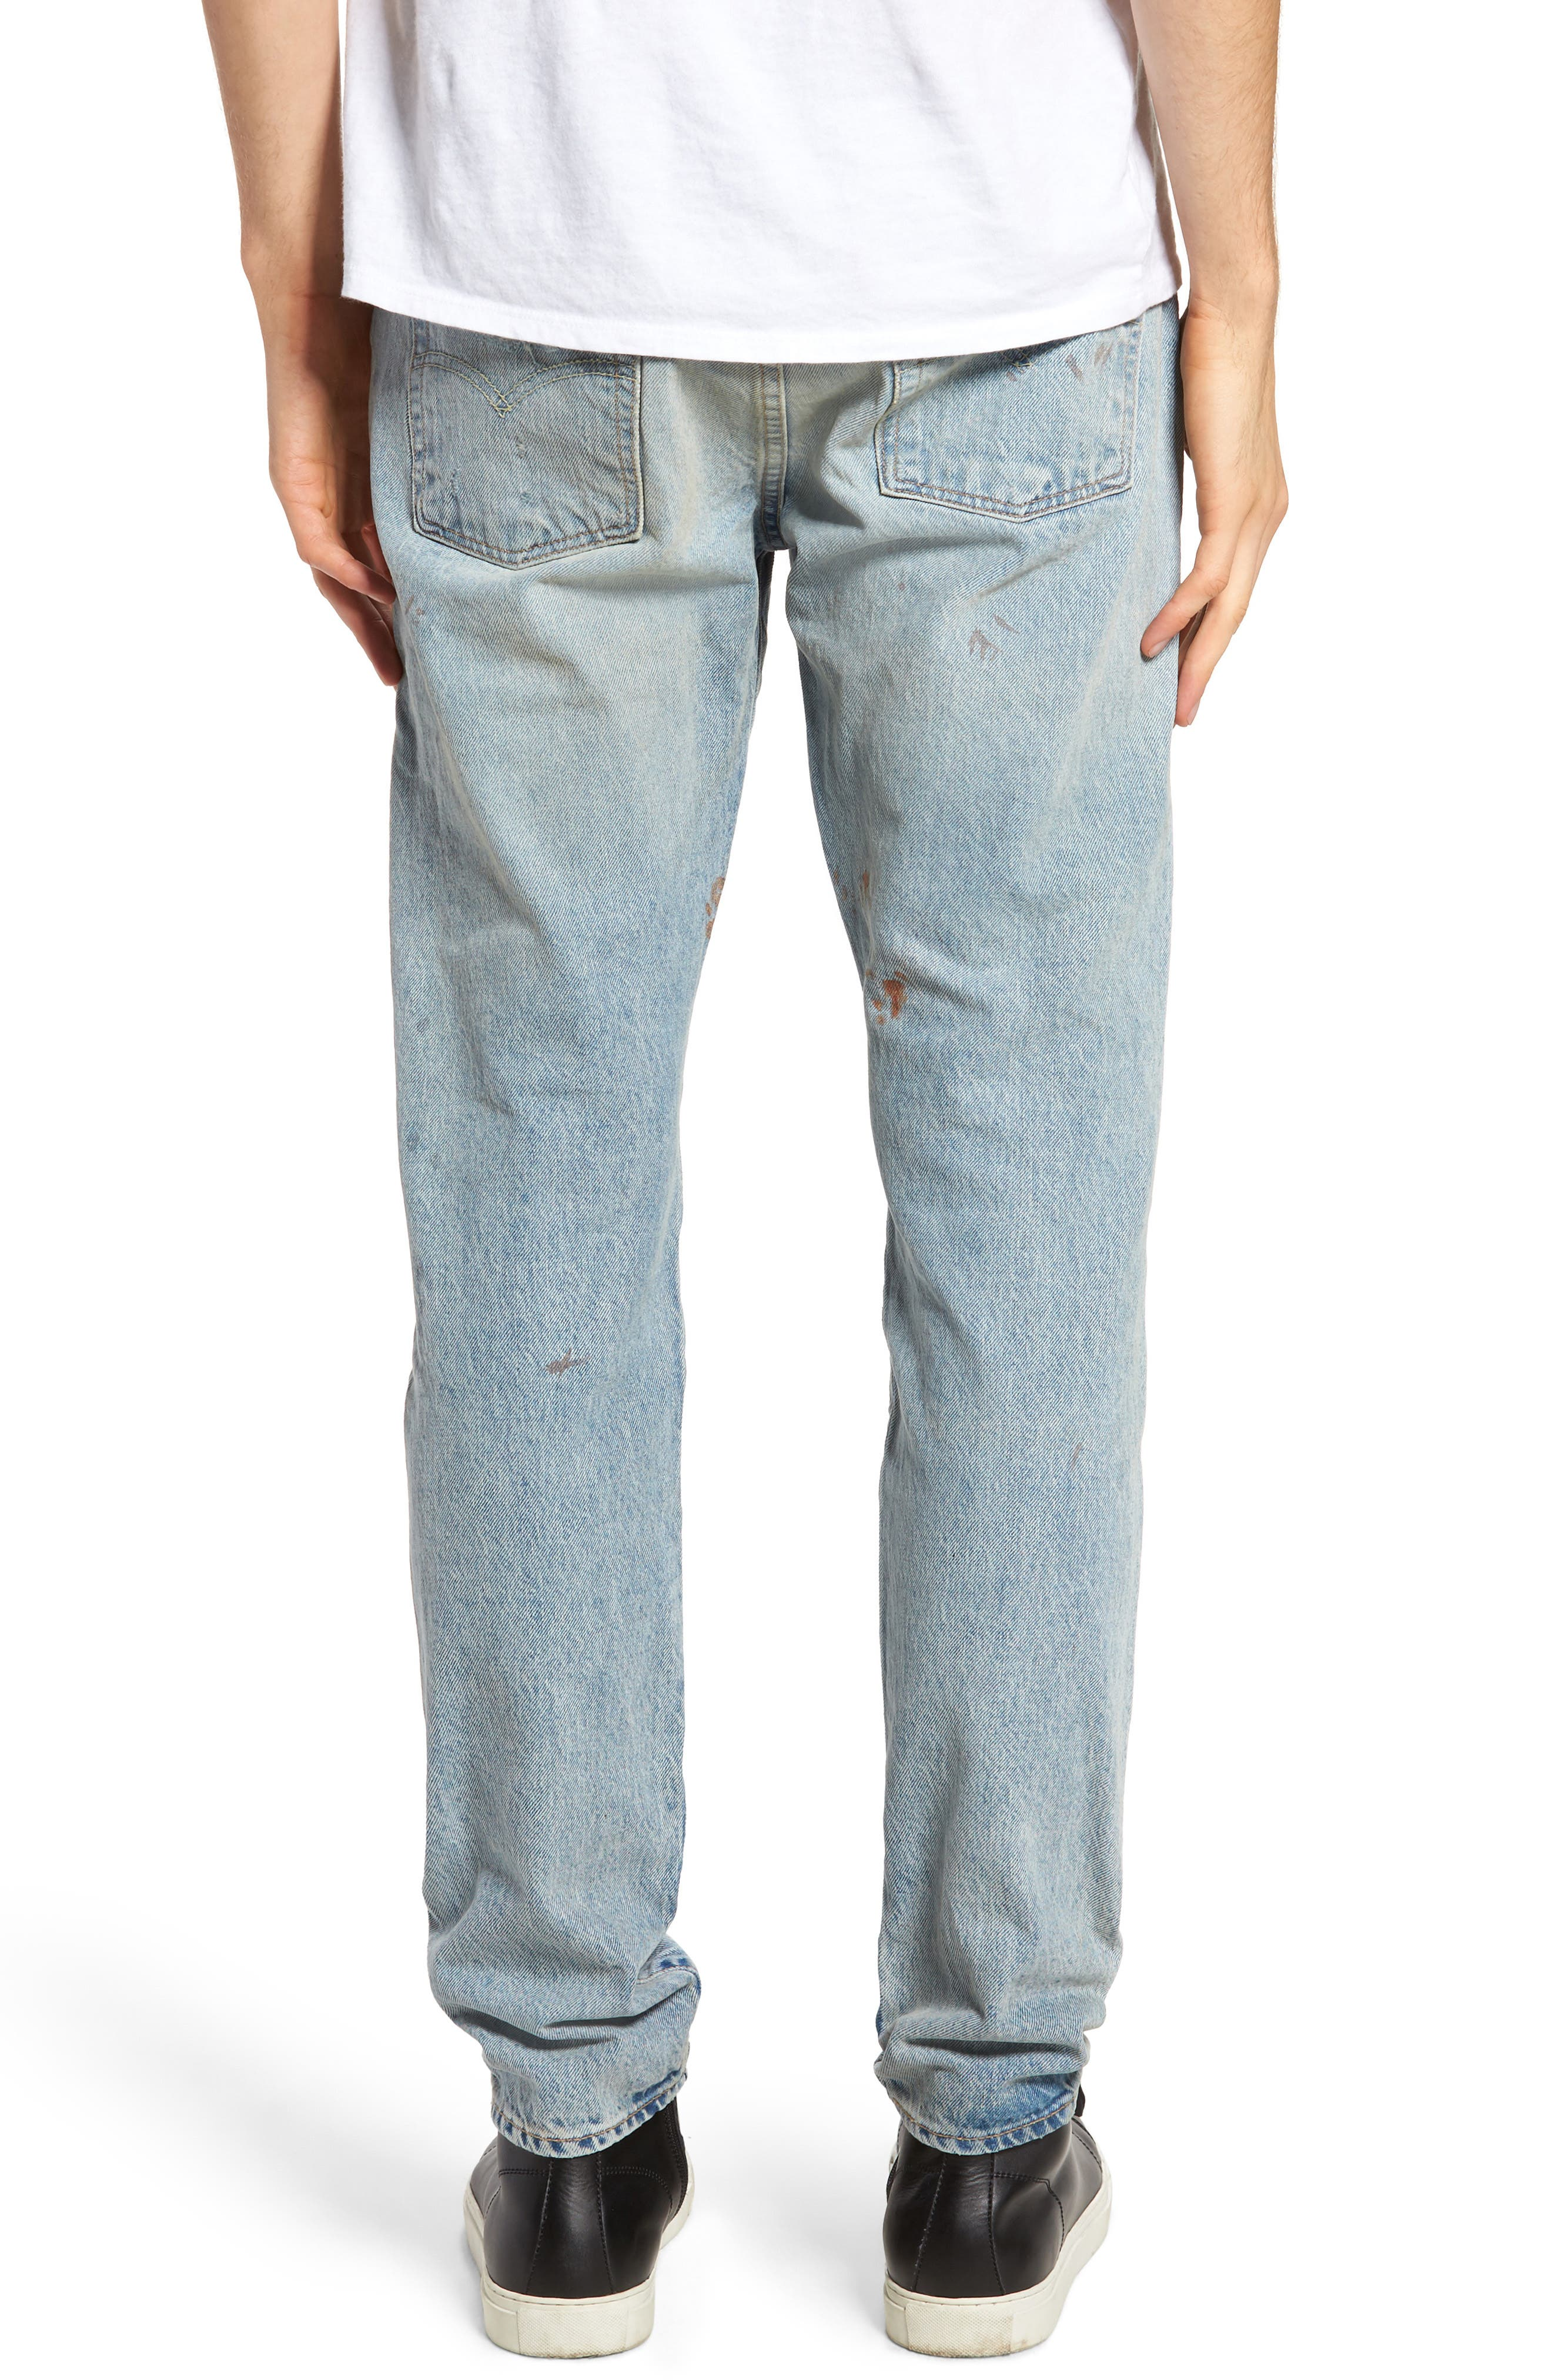 512 Slouchy Skinny Fit Jeans,                             Alternate thumbnail 2, color,                             423